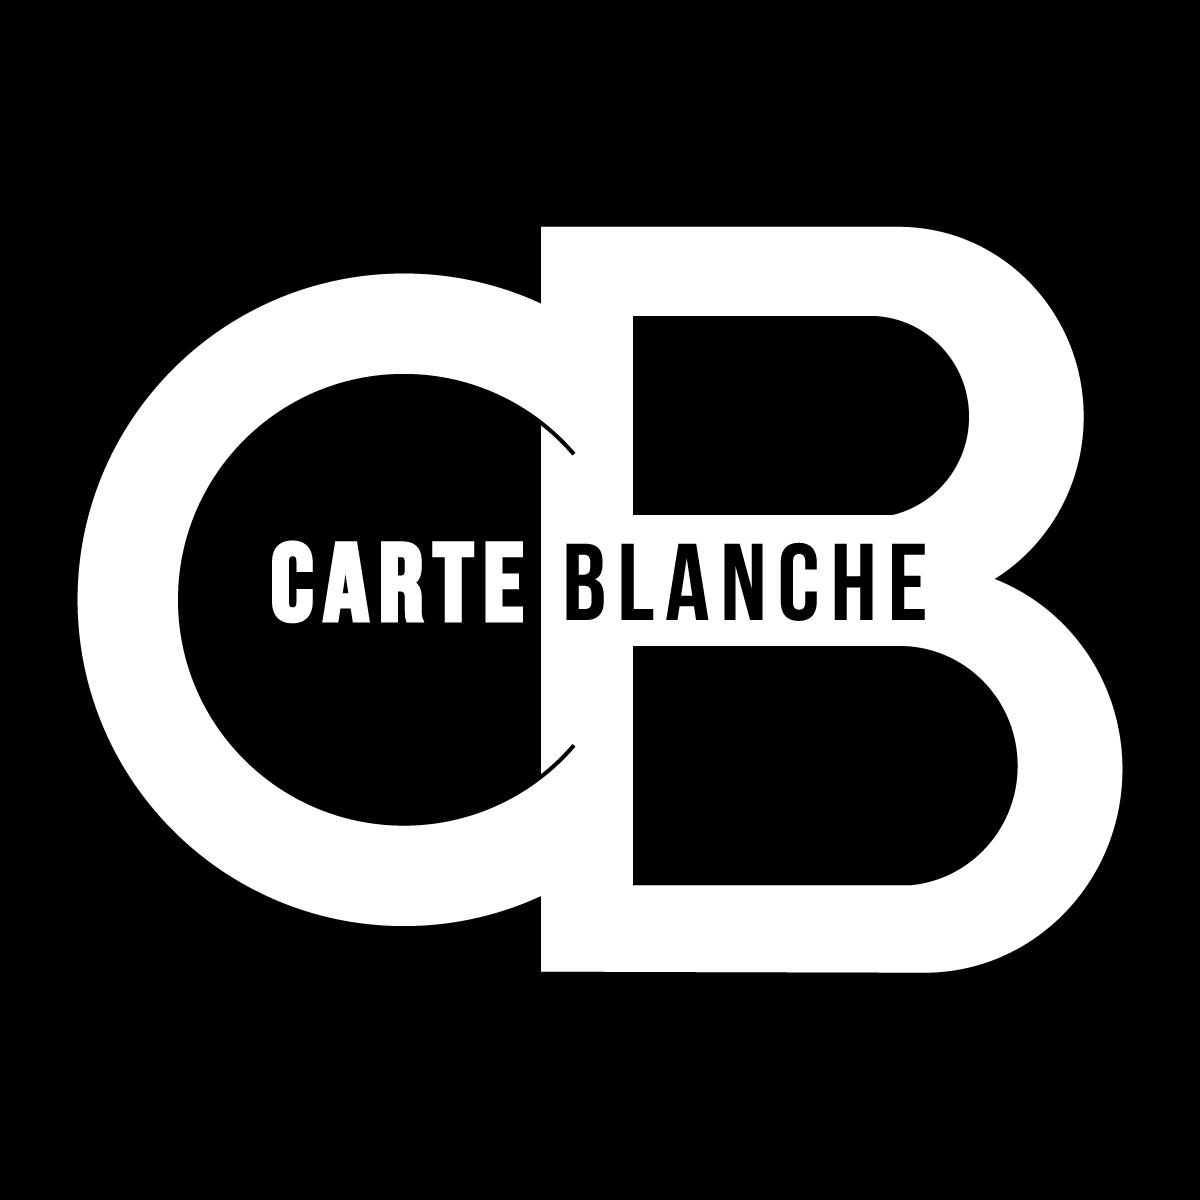 Carte Blanche Limited